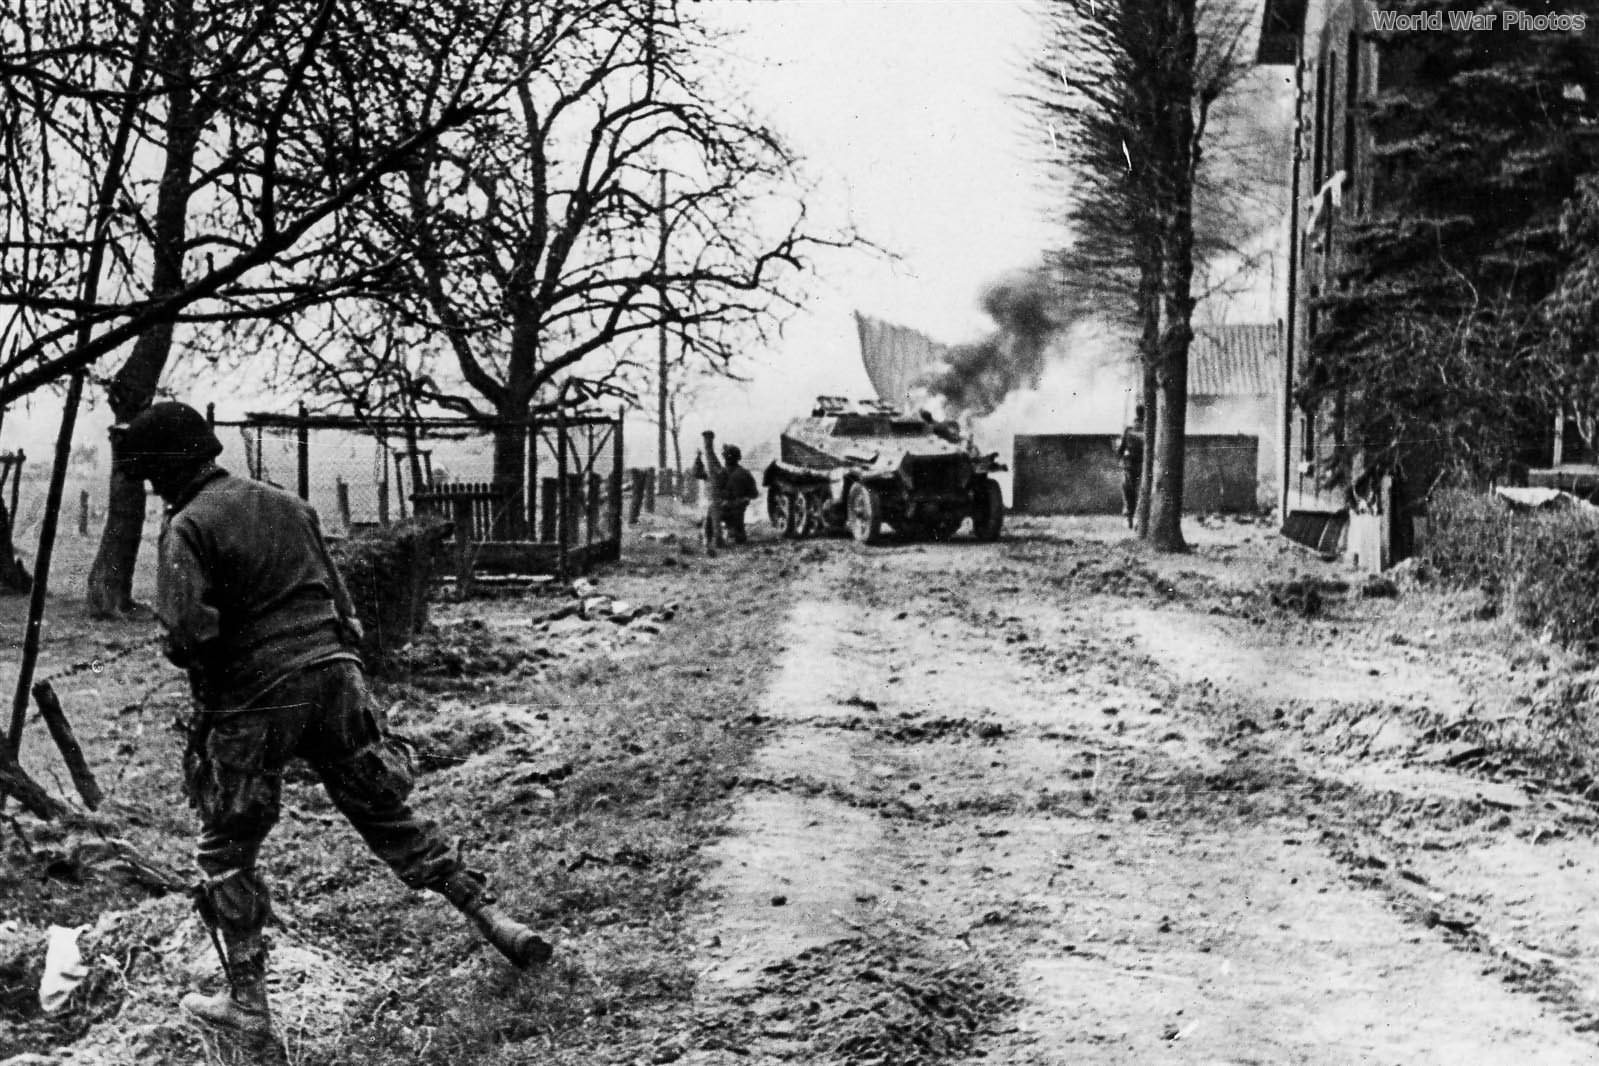 17th Airborne Division Paratroopers with SdKfz 252 24 March 1945